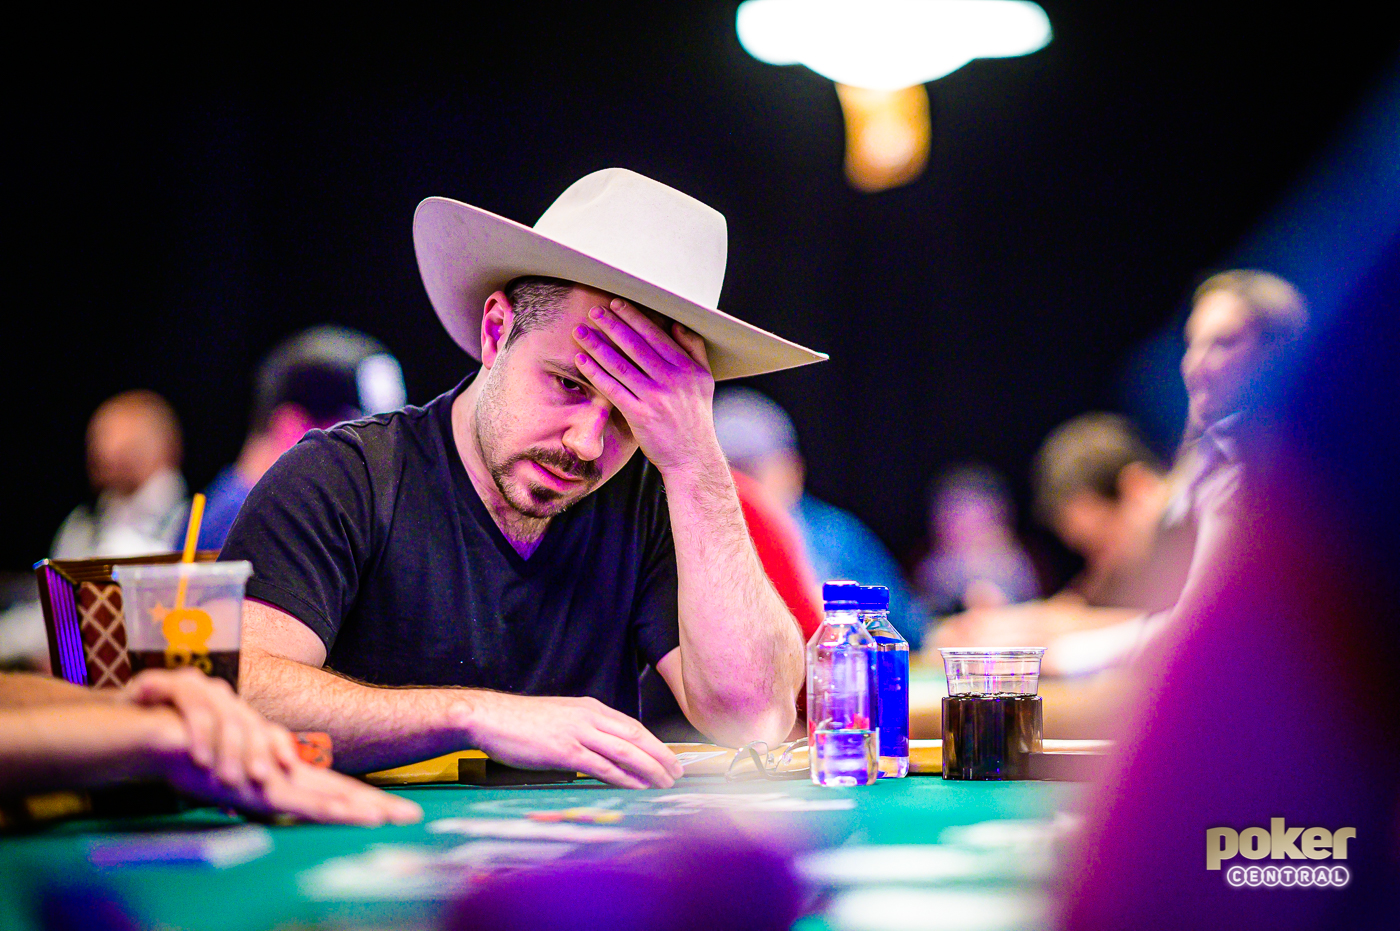 Dan Smith in action during the 2019 World Series of Poker.